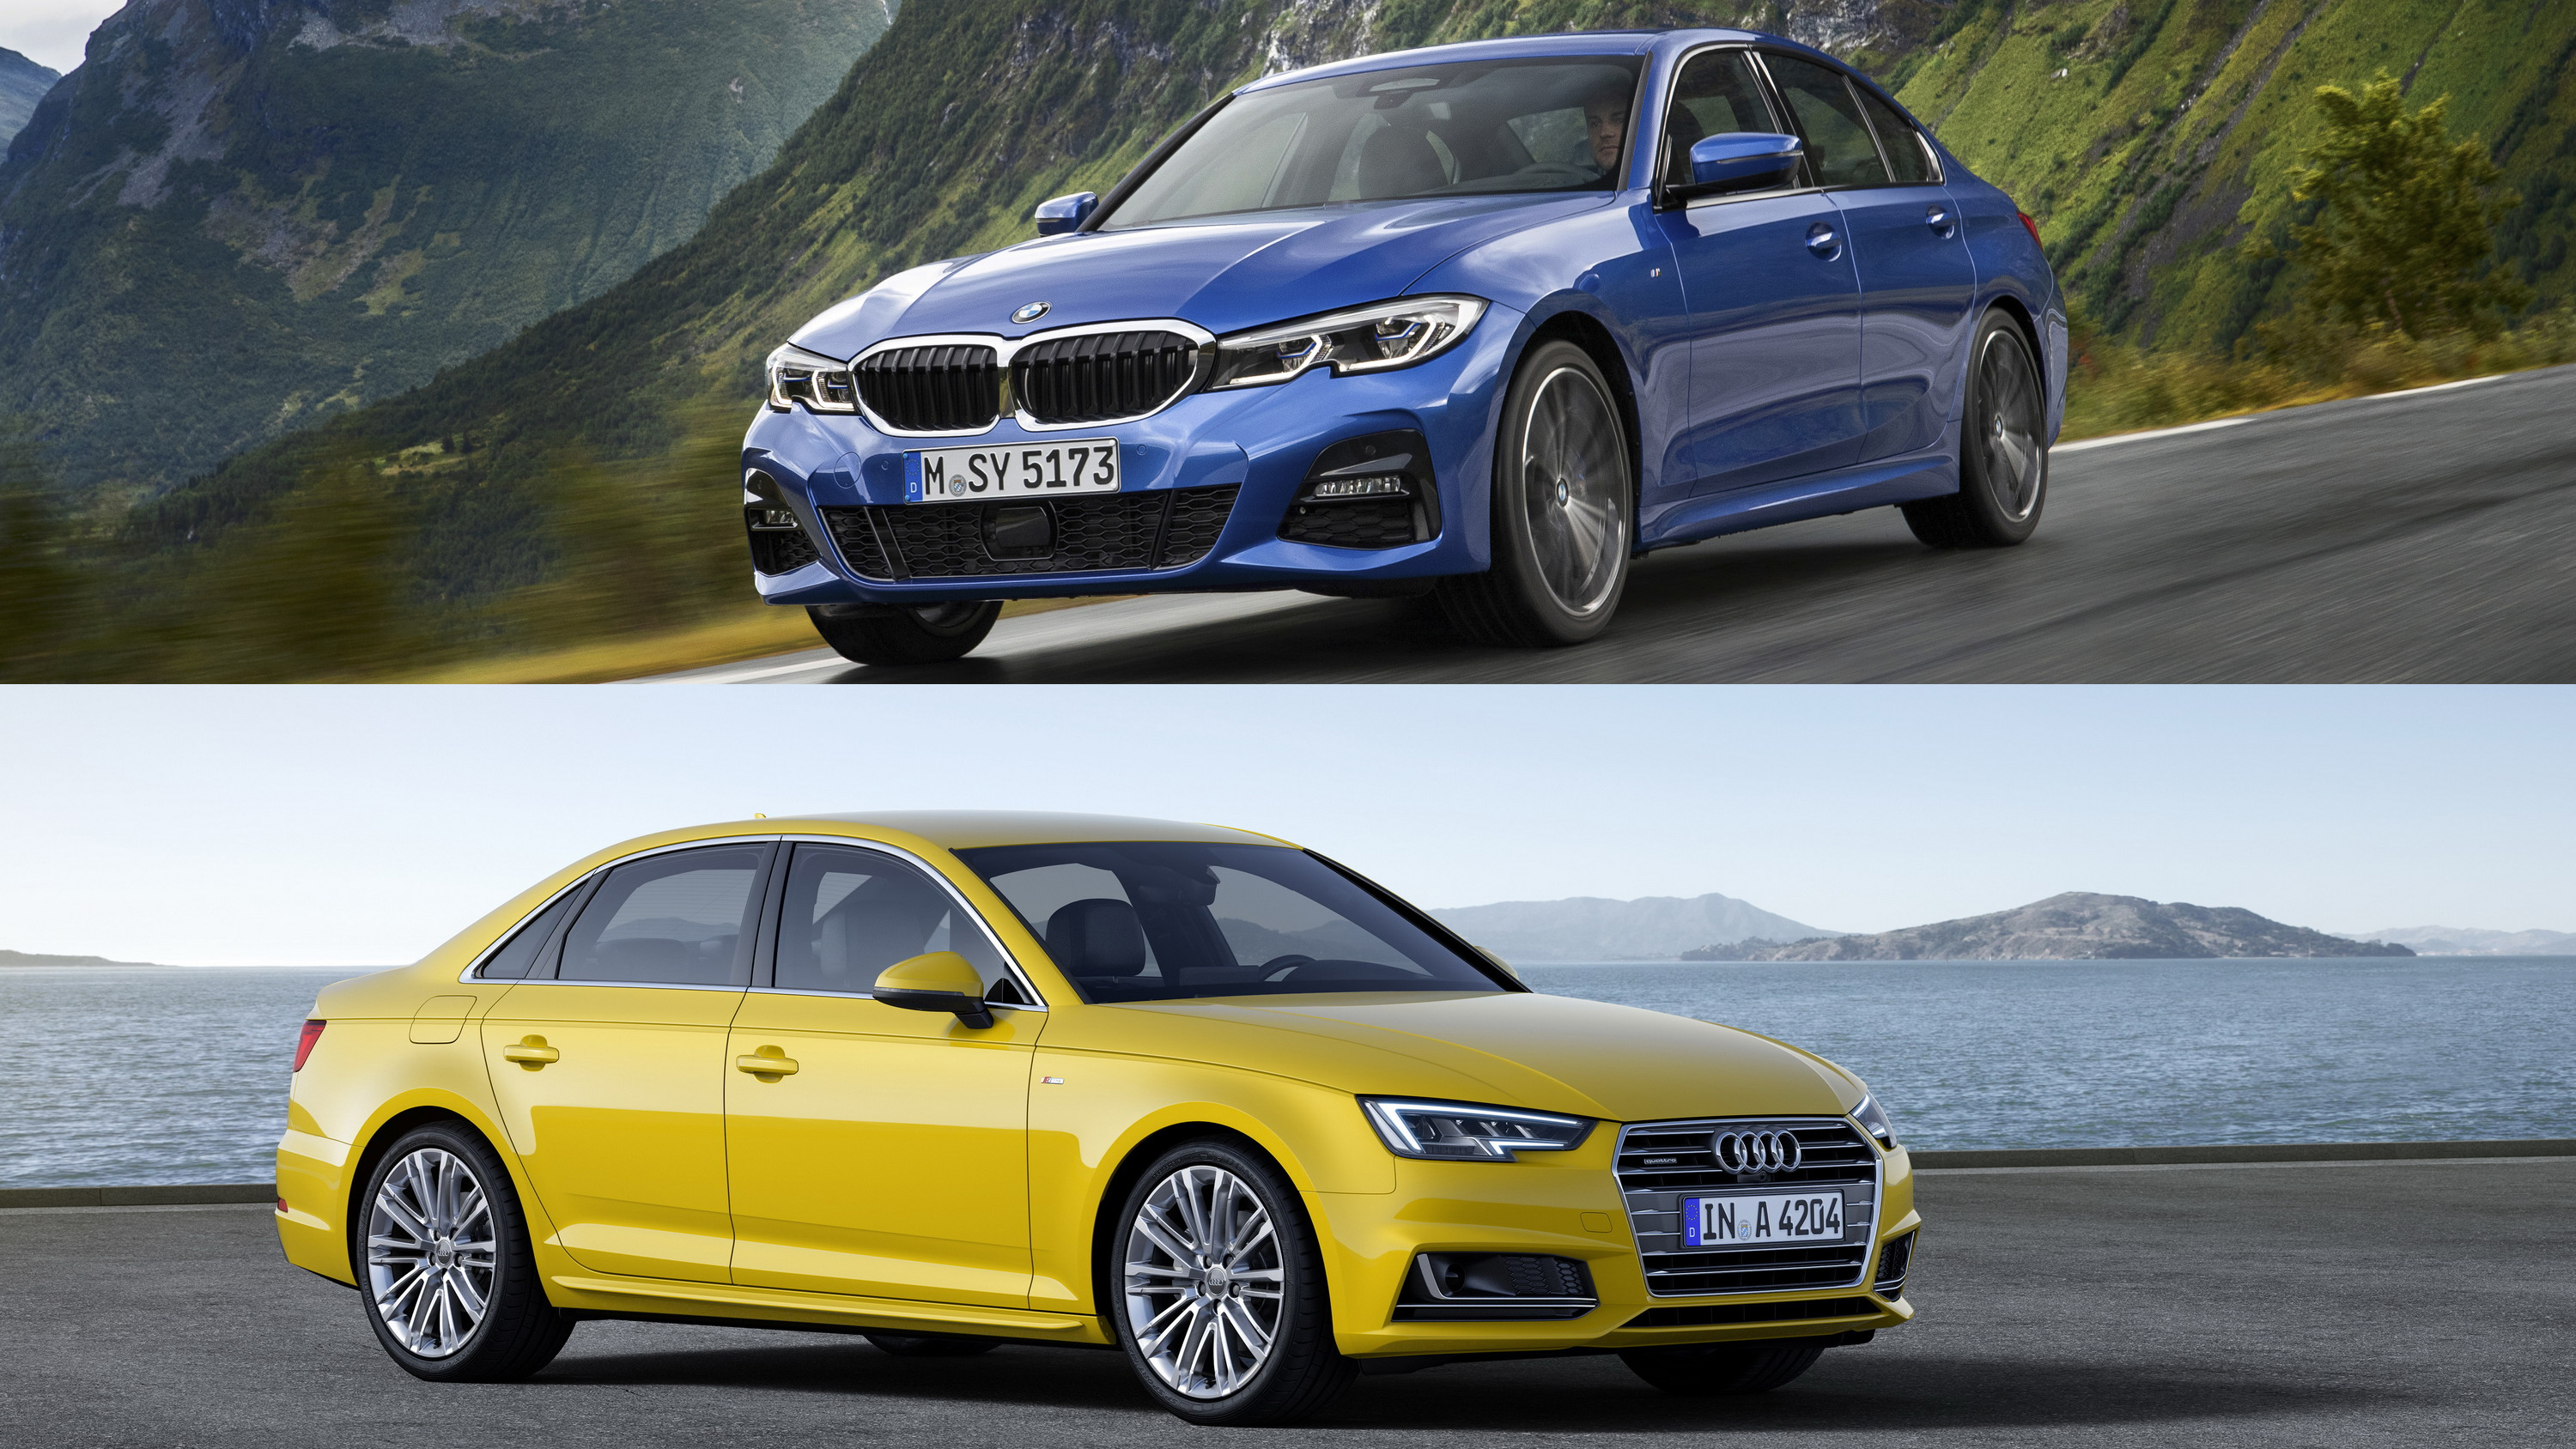 2019 Bmw 3 Series Vs 2019 Audi A4 Pictures Photos Wallpapers